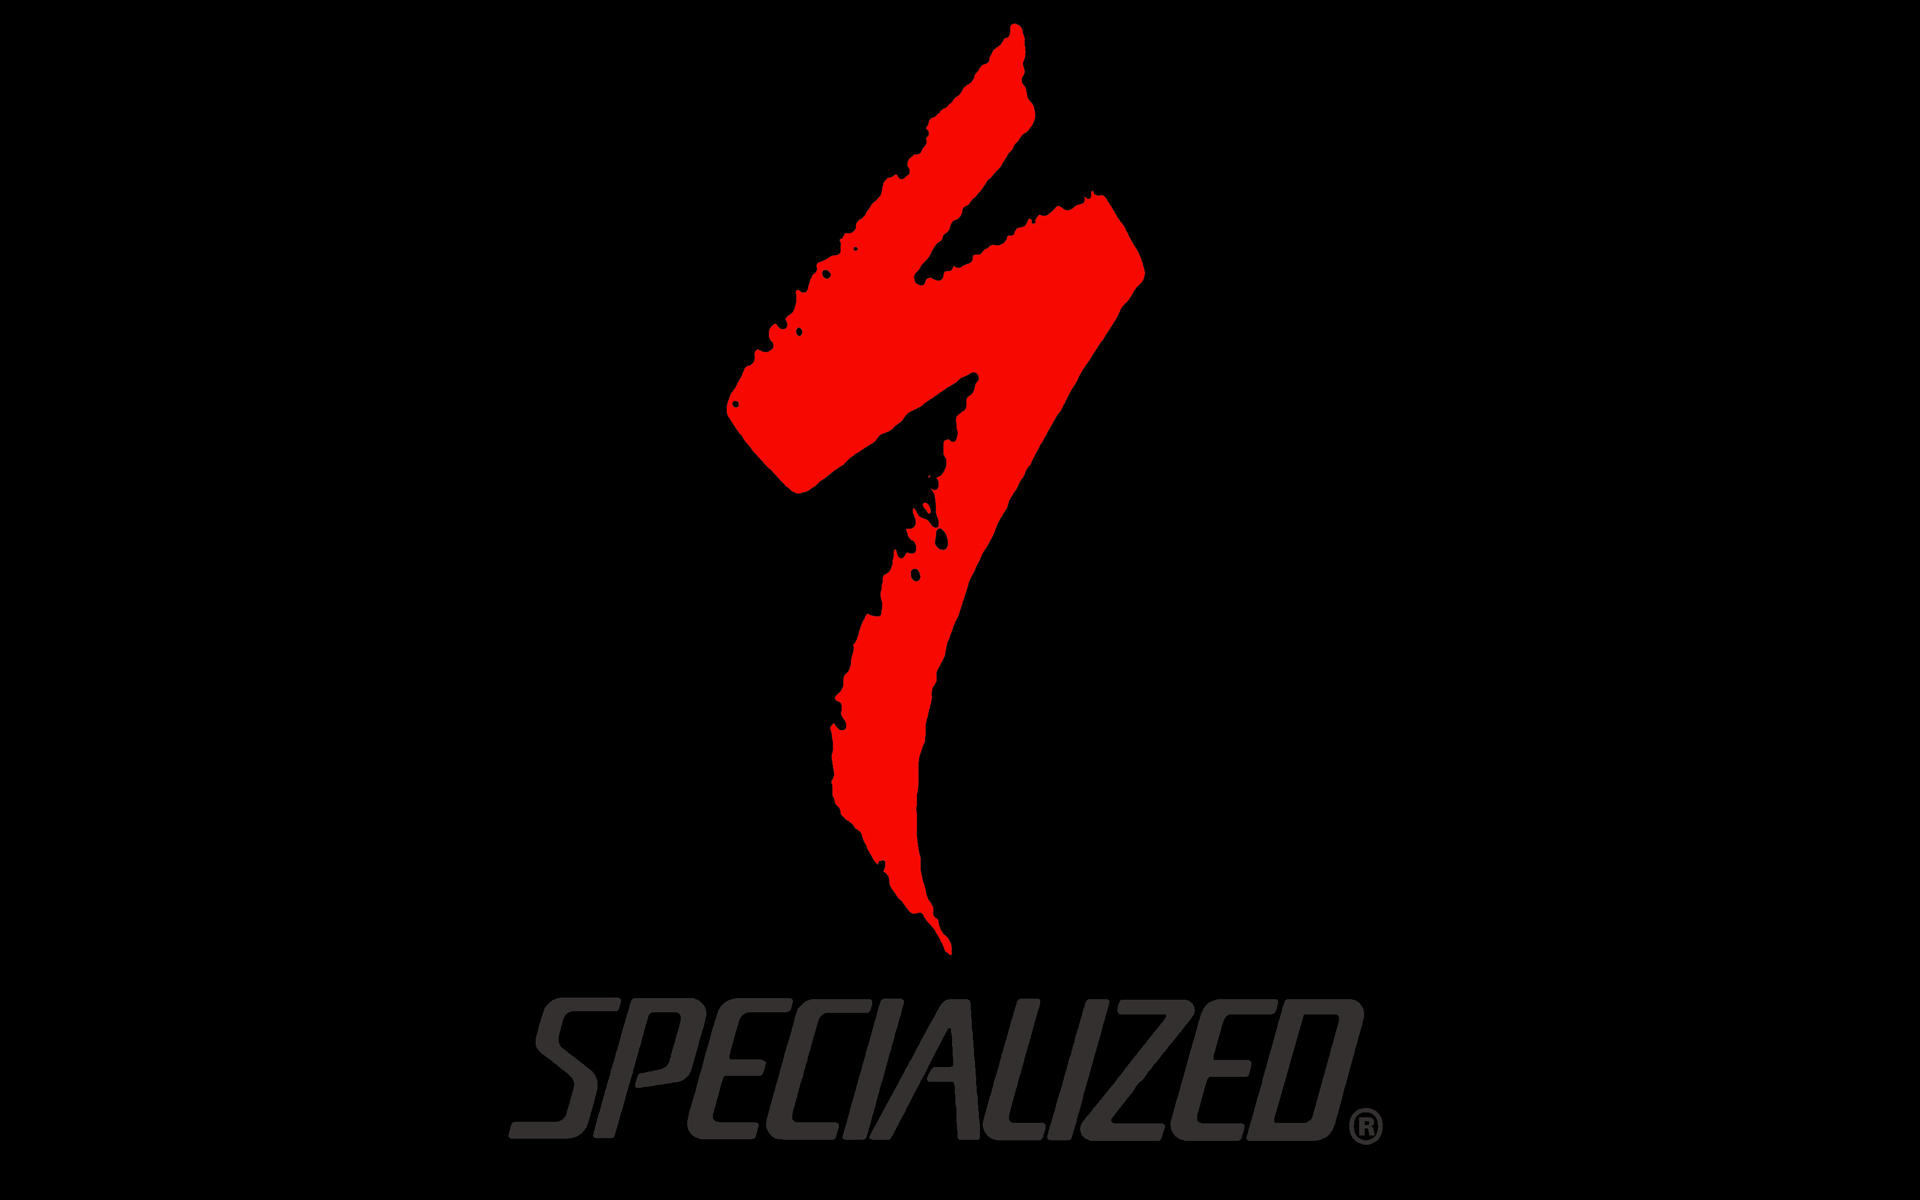 Image Gallery specialized wallpaper